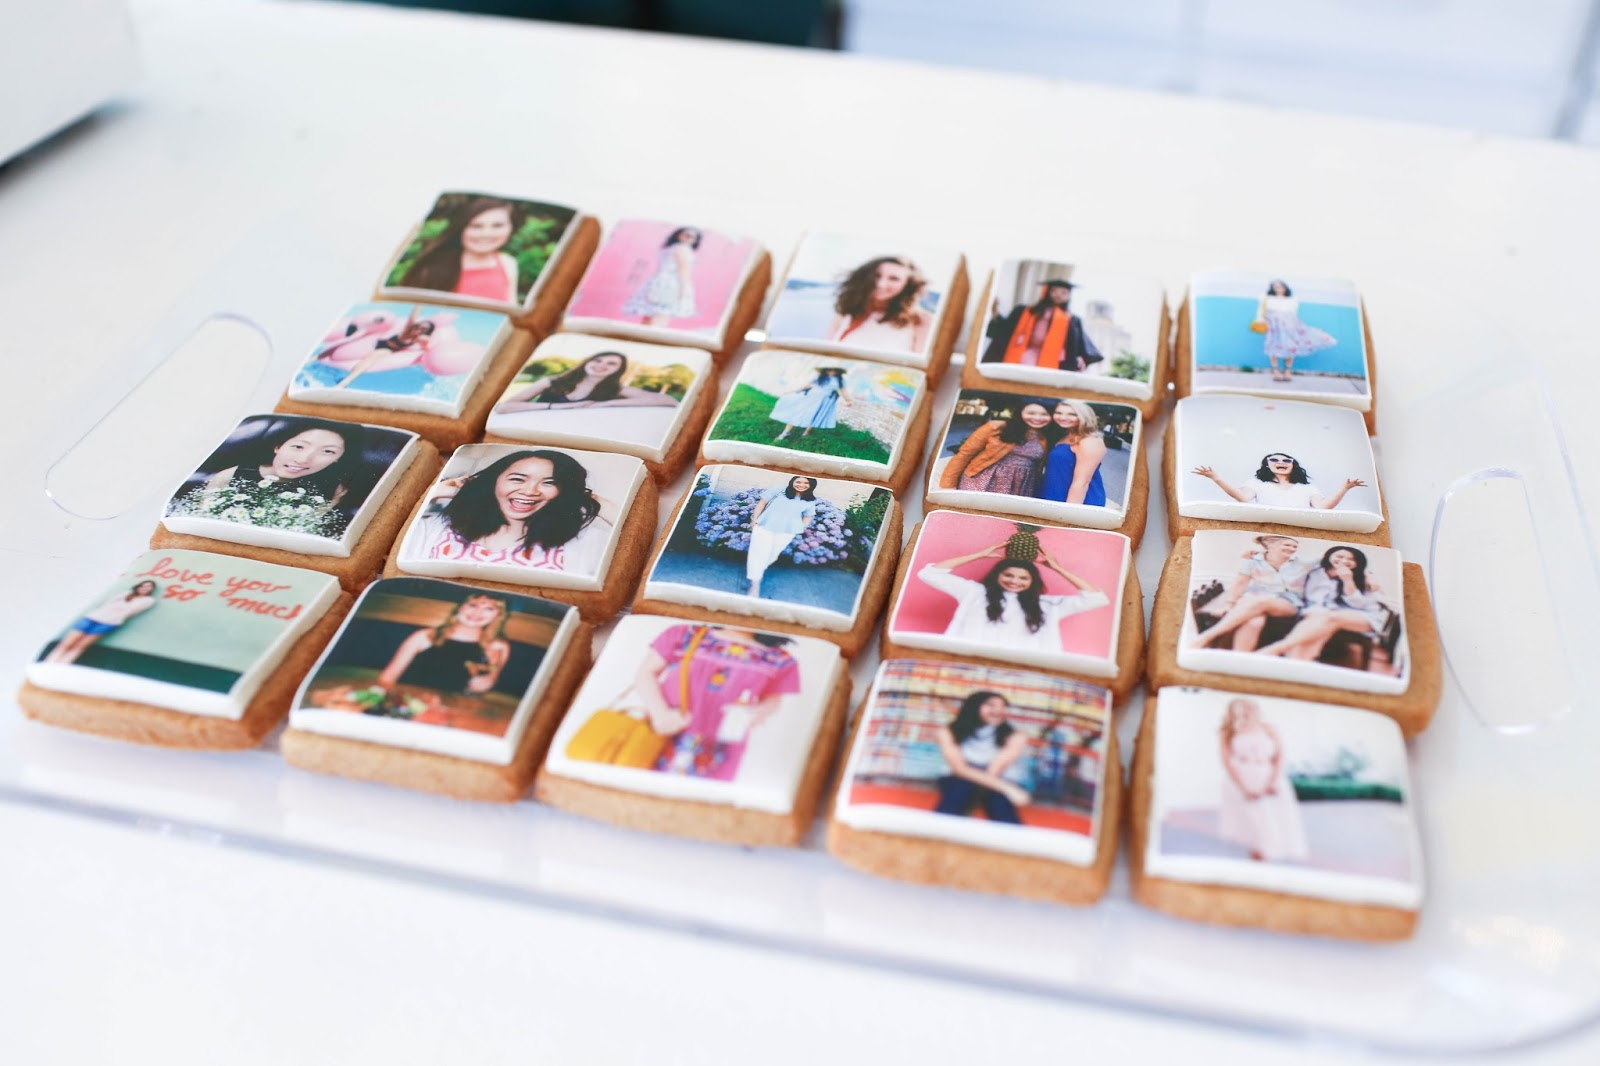 kellie's baking co instagram cookies